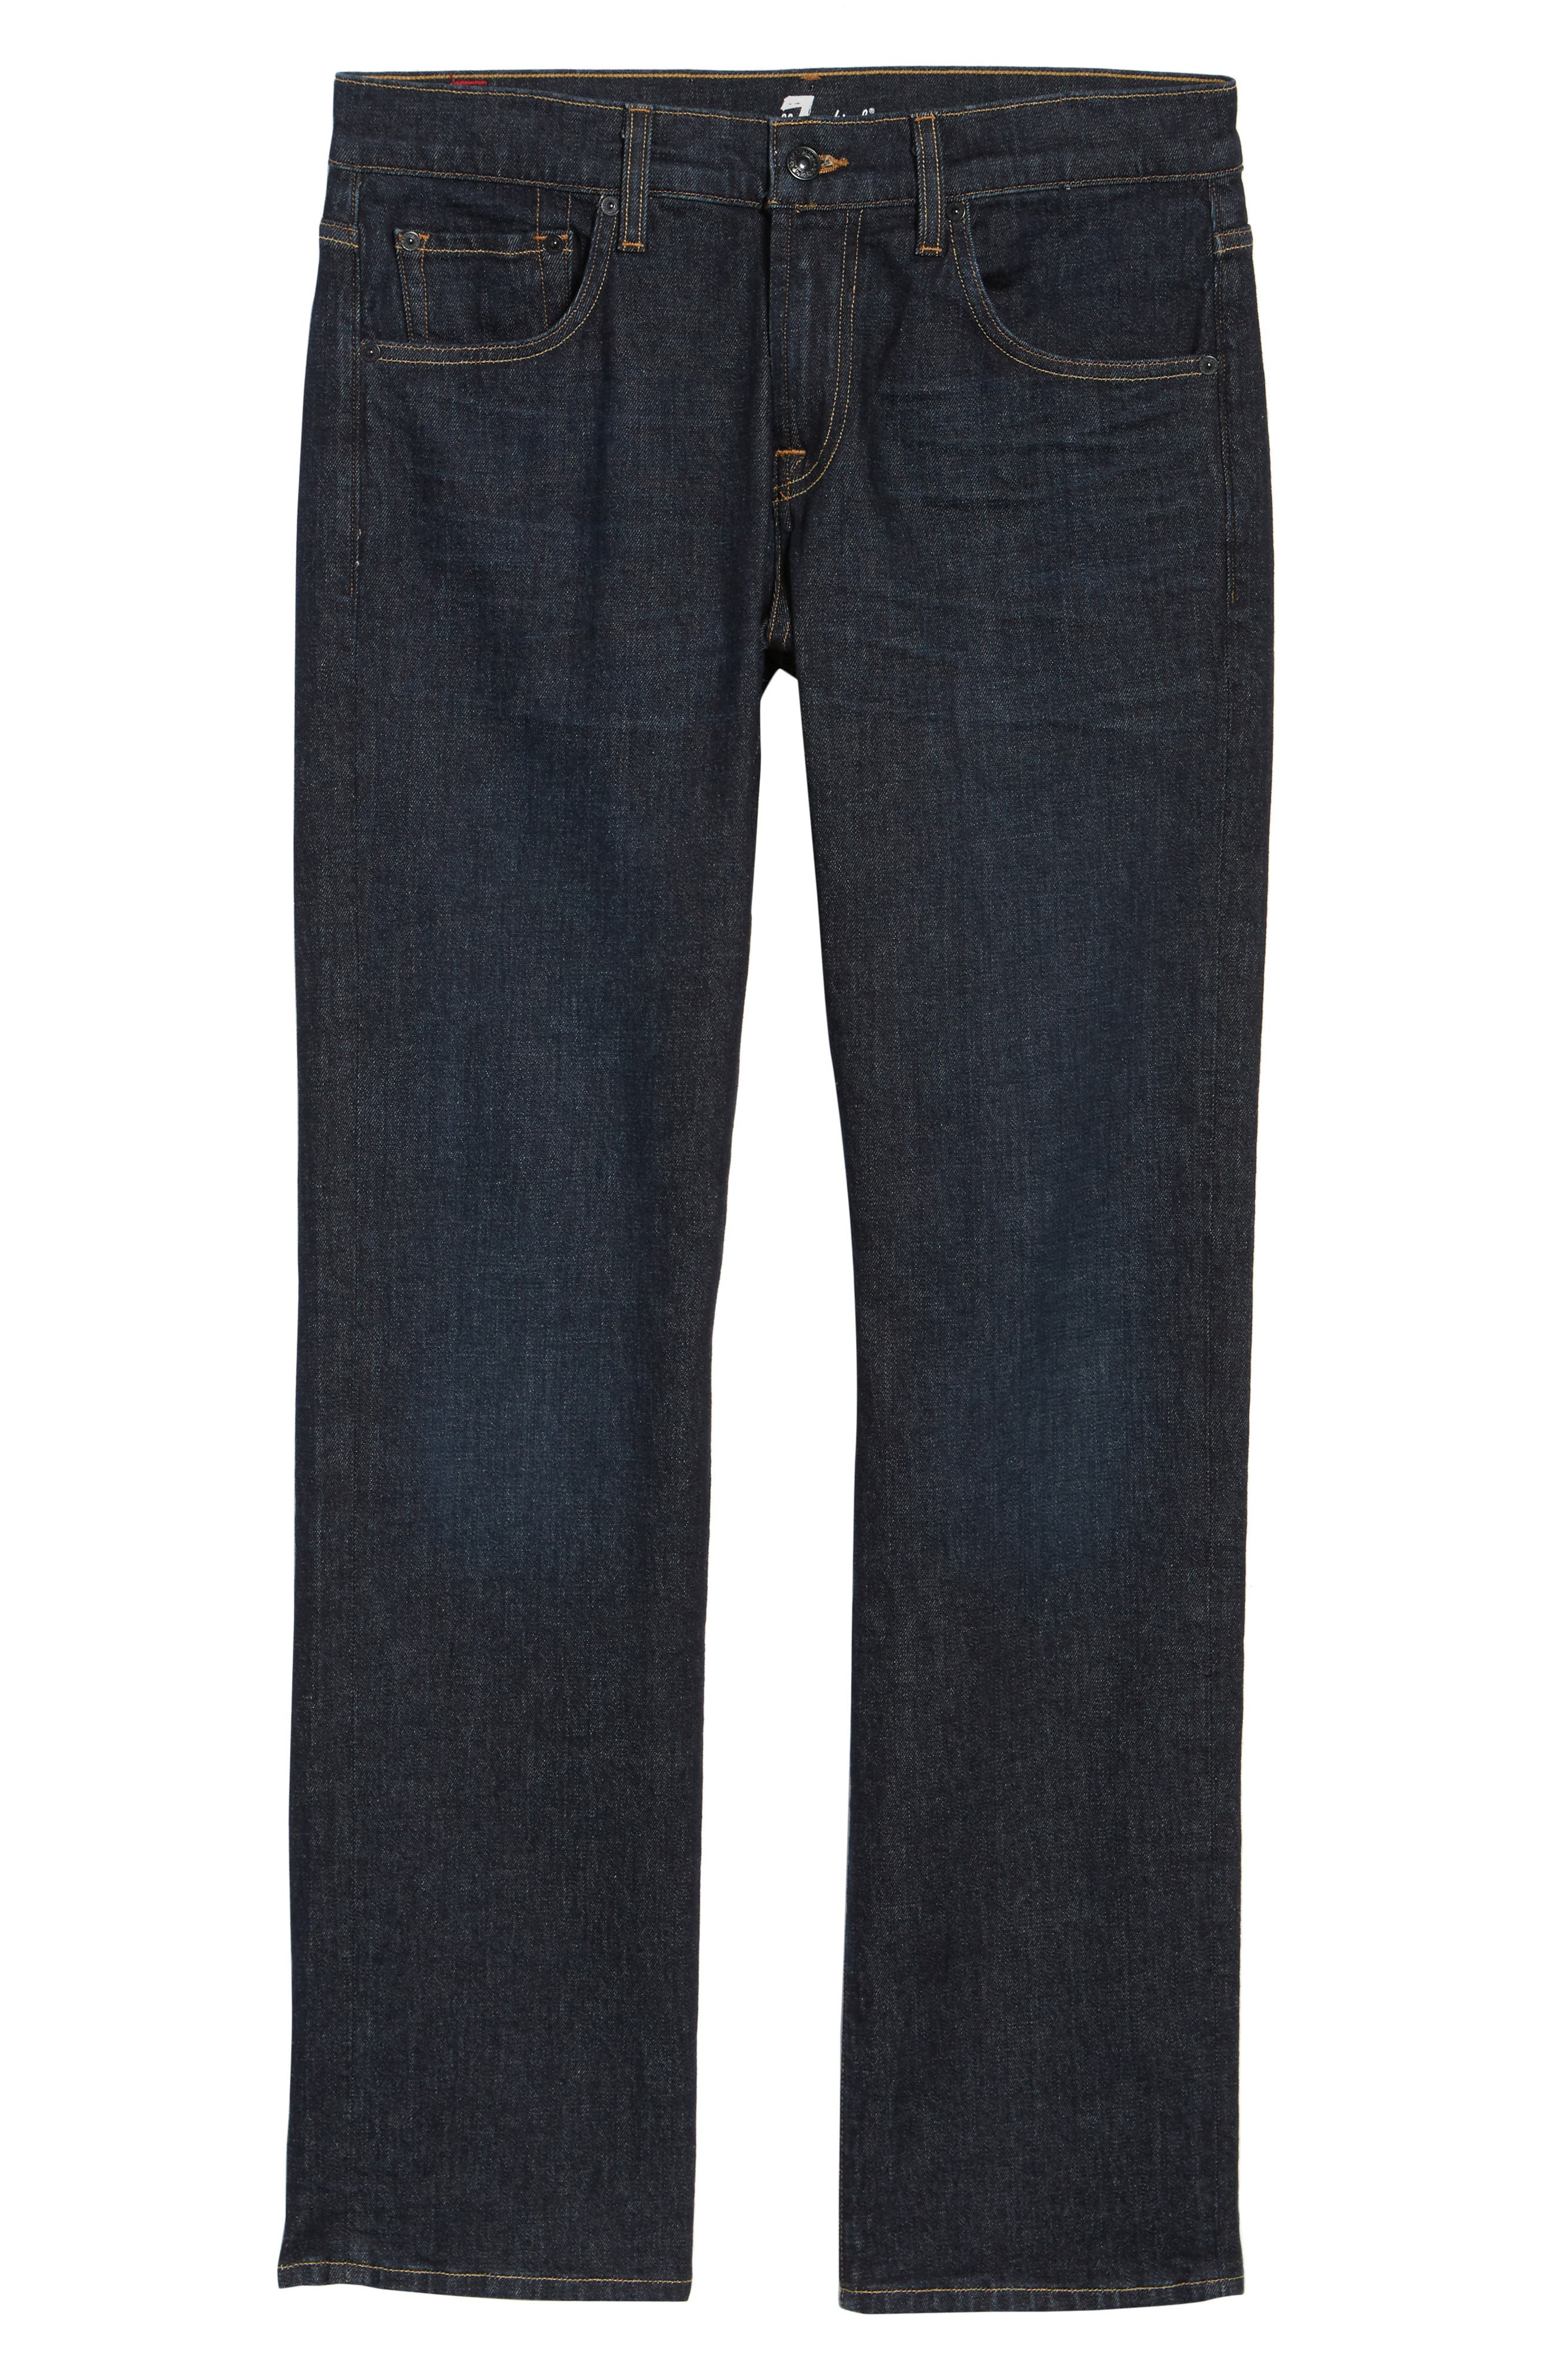 Austyn Relaxed Fit Jeans,                             Alternate thumbnail 6, color,                             Codec